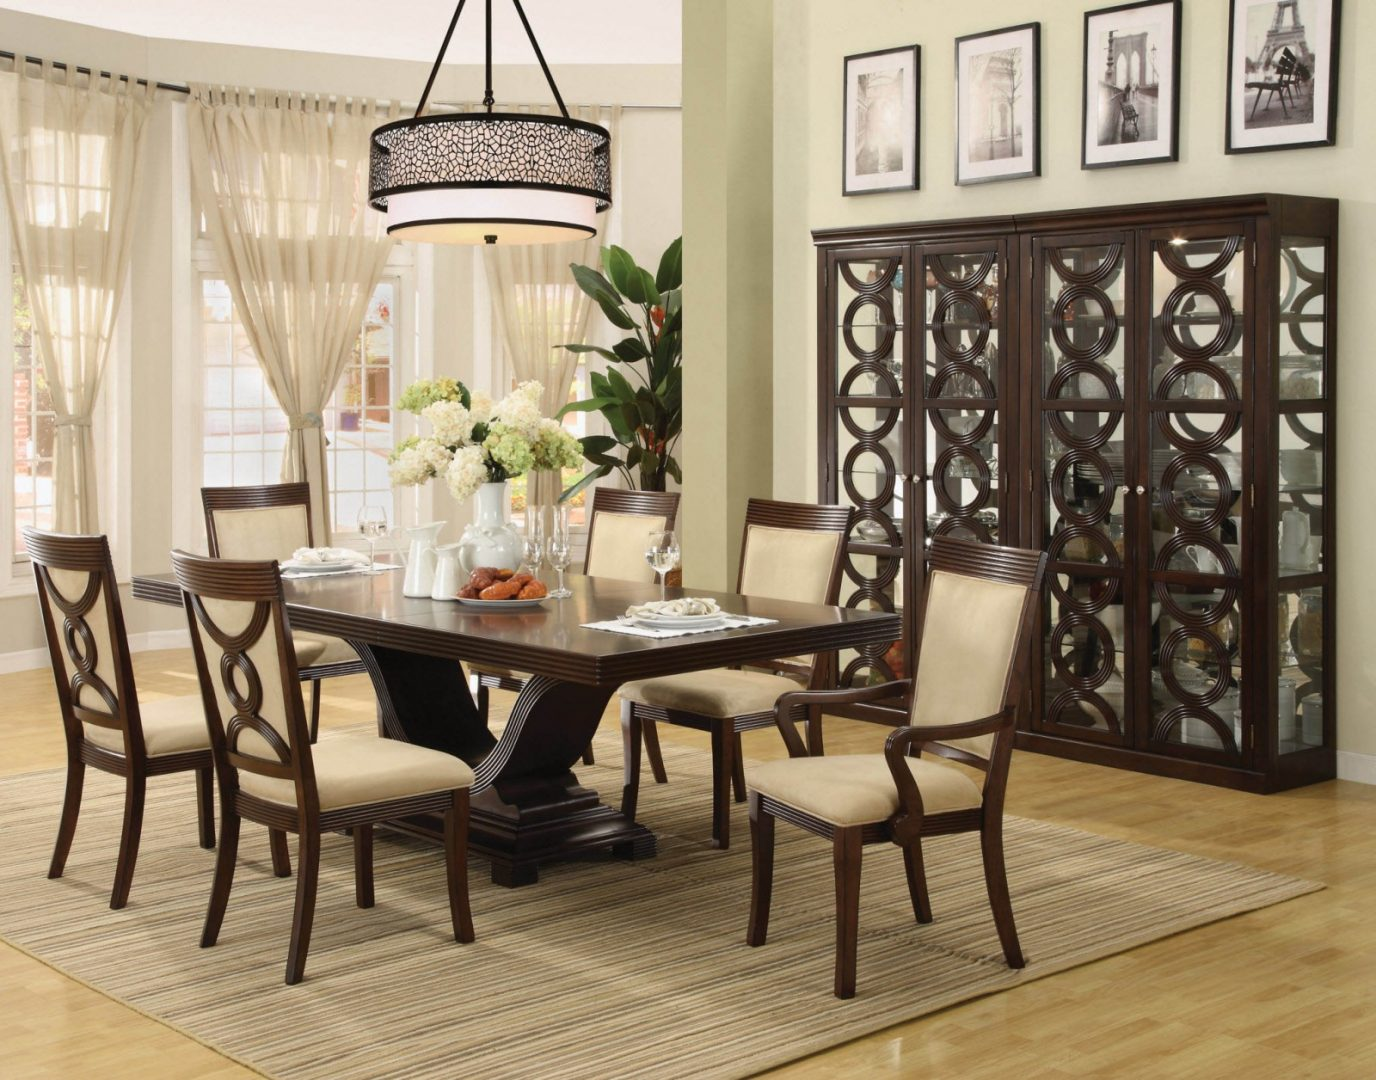 Formal Dining Room Table Centerpieces 1376 x 1080